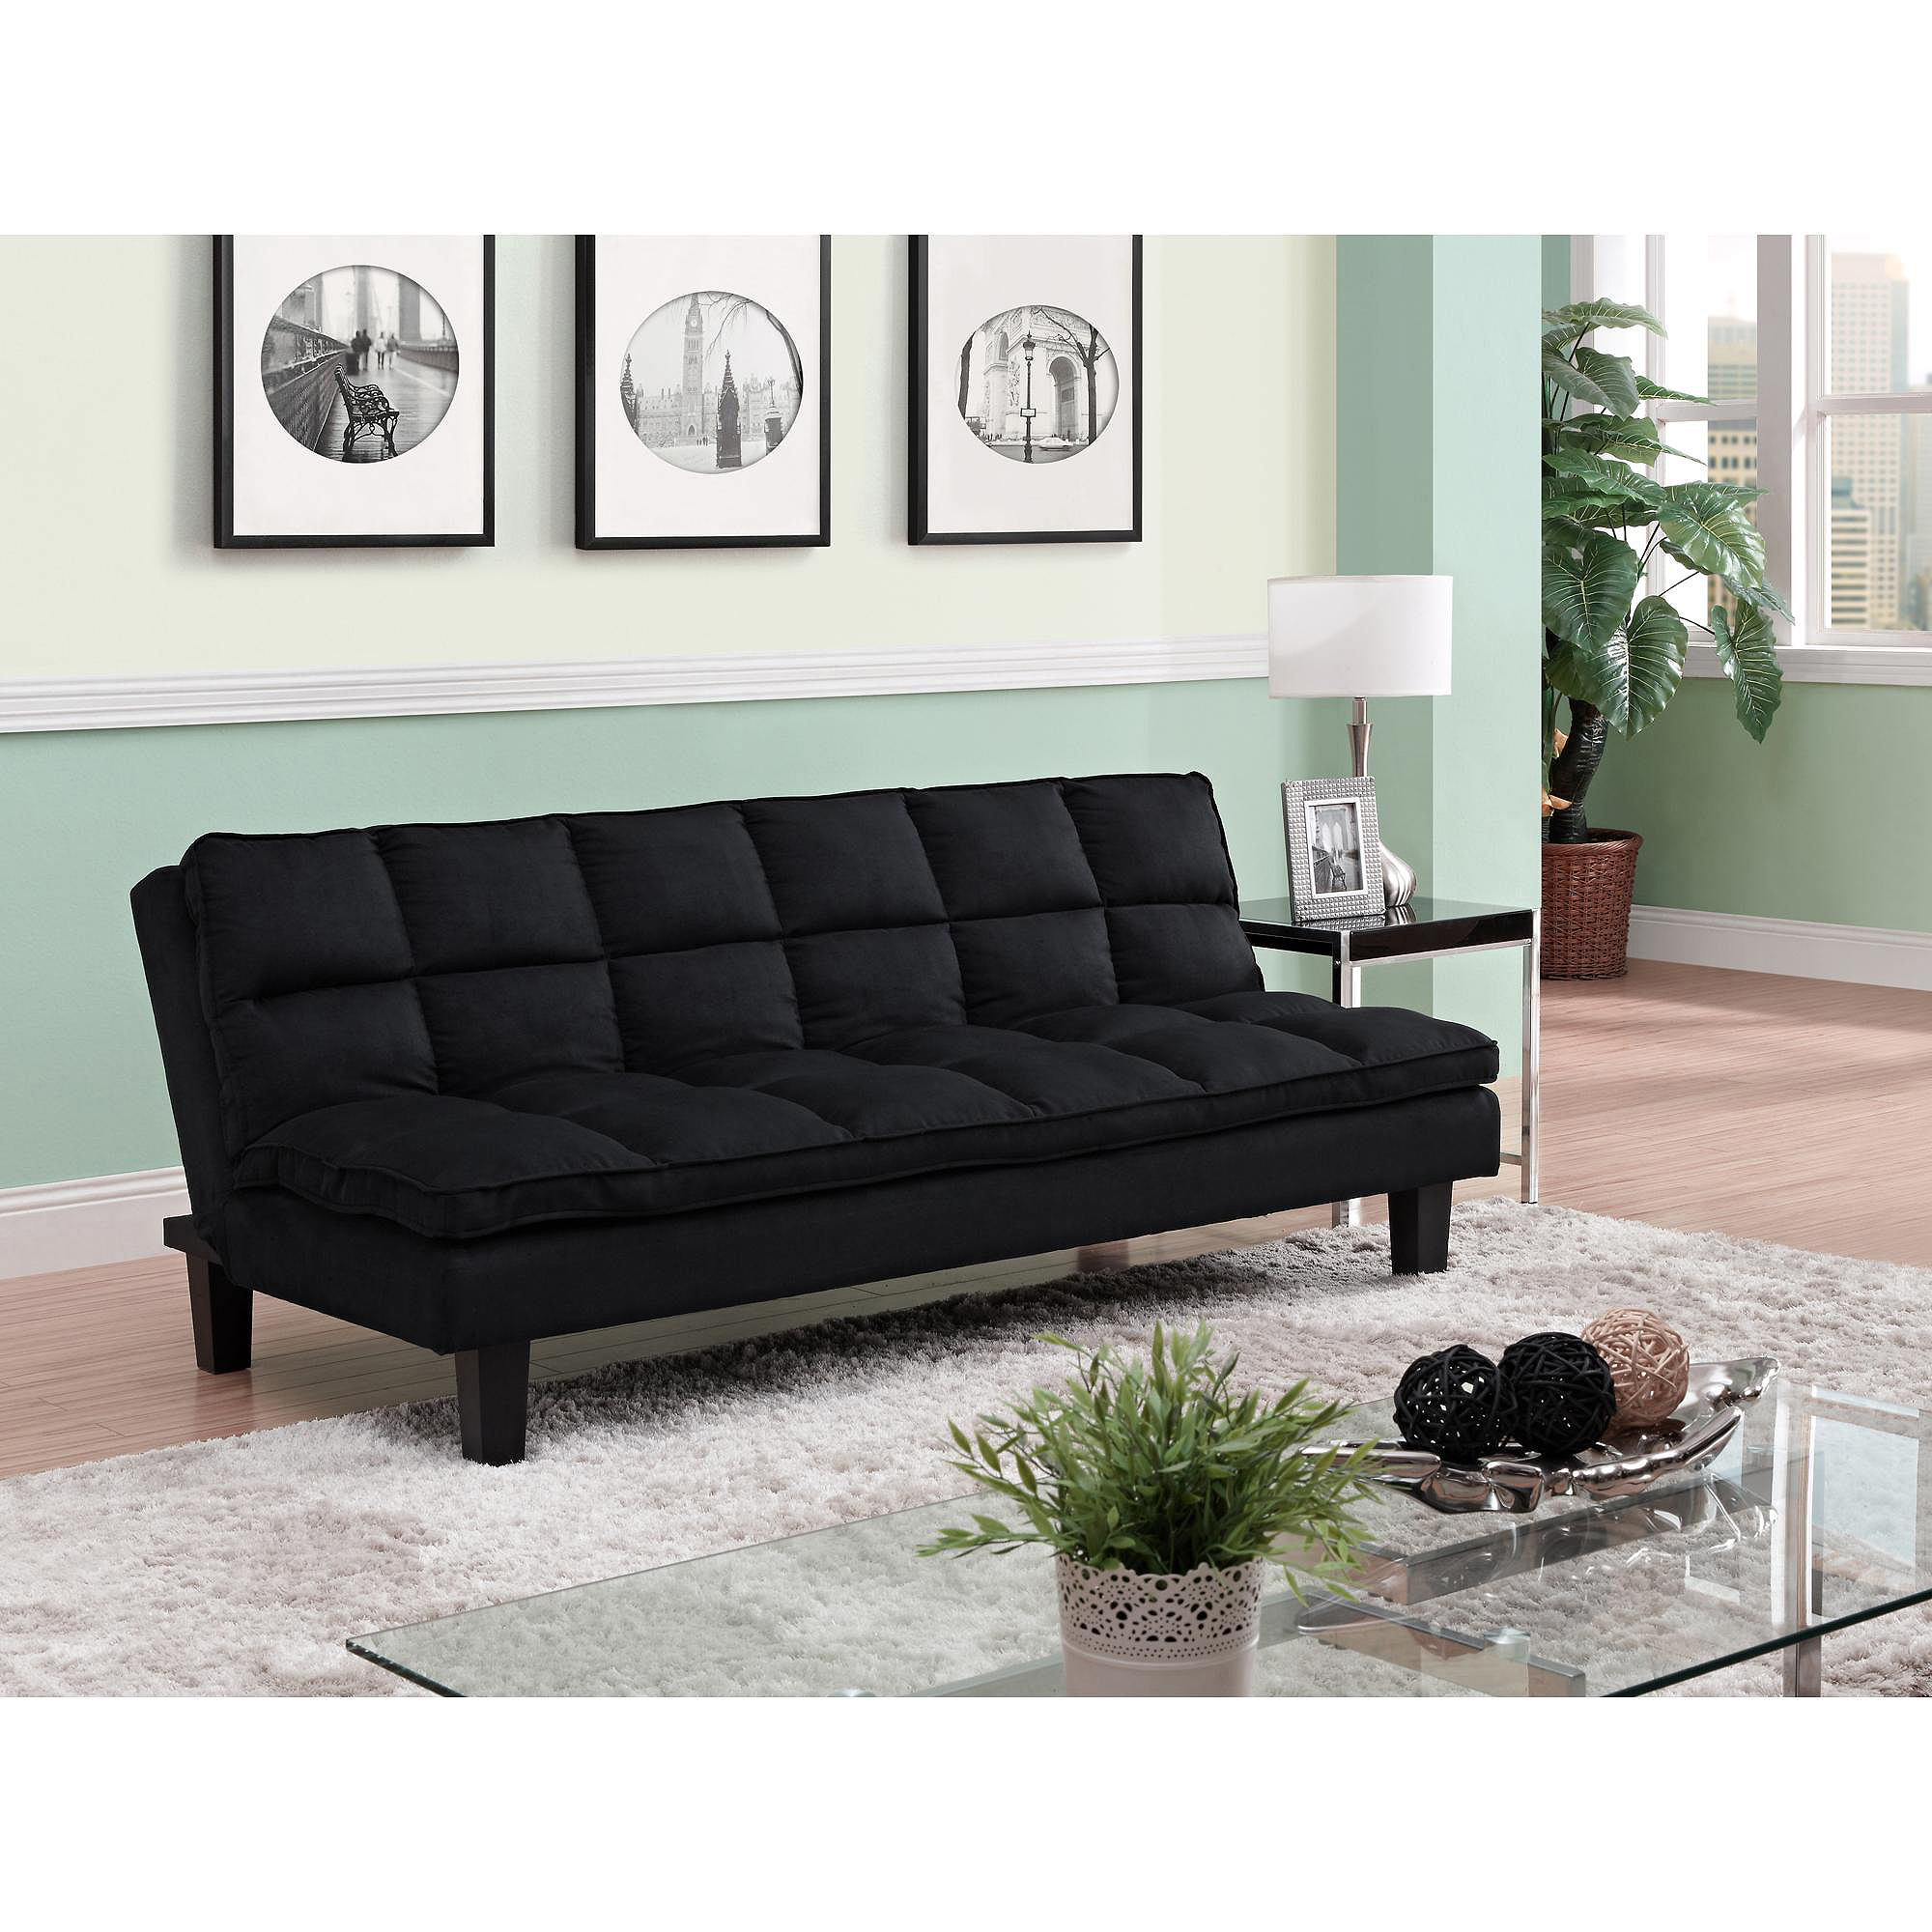 for small less space sofa couch futons apartment city best image